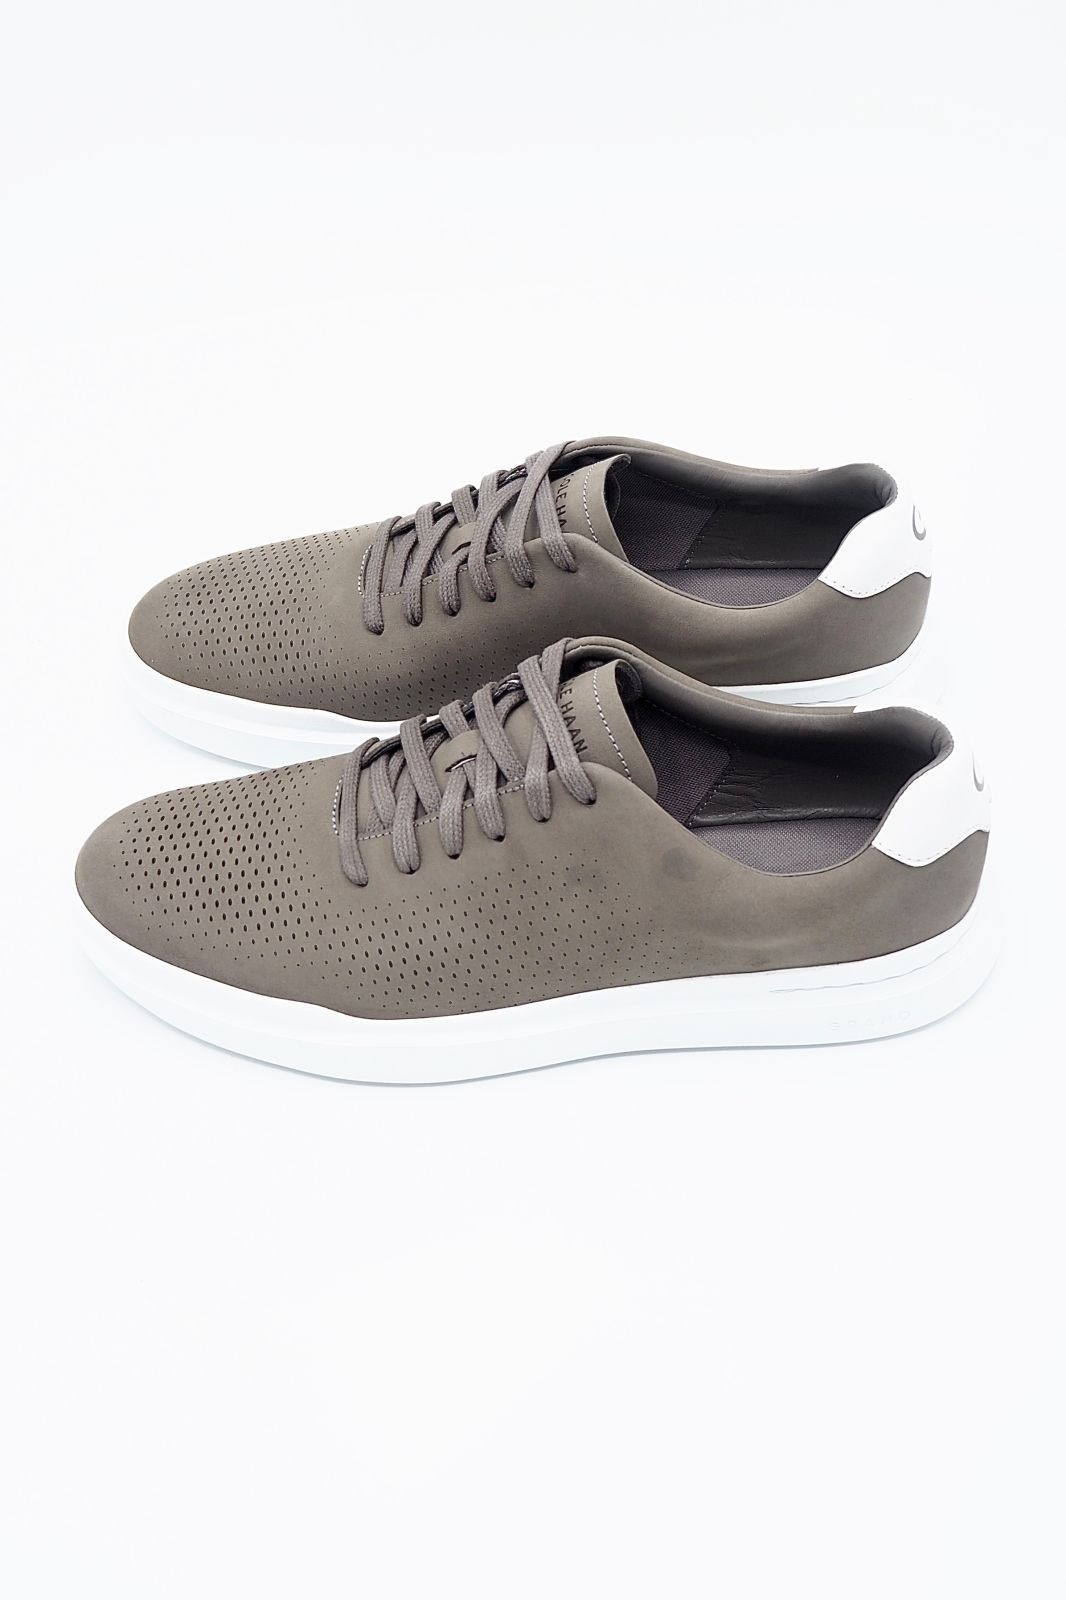 Cole Haan basket bas Taupe hommes (ColeHaan-New sneaker - C31220 sneak.taupé gris) - Marine | Much more than shoes